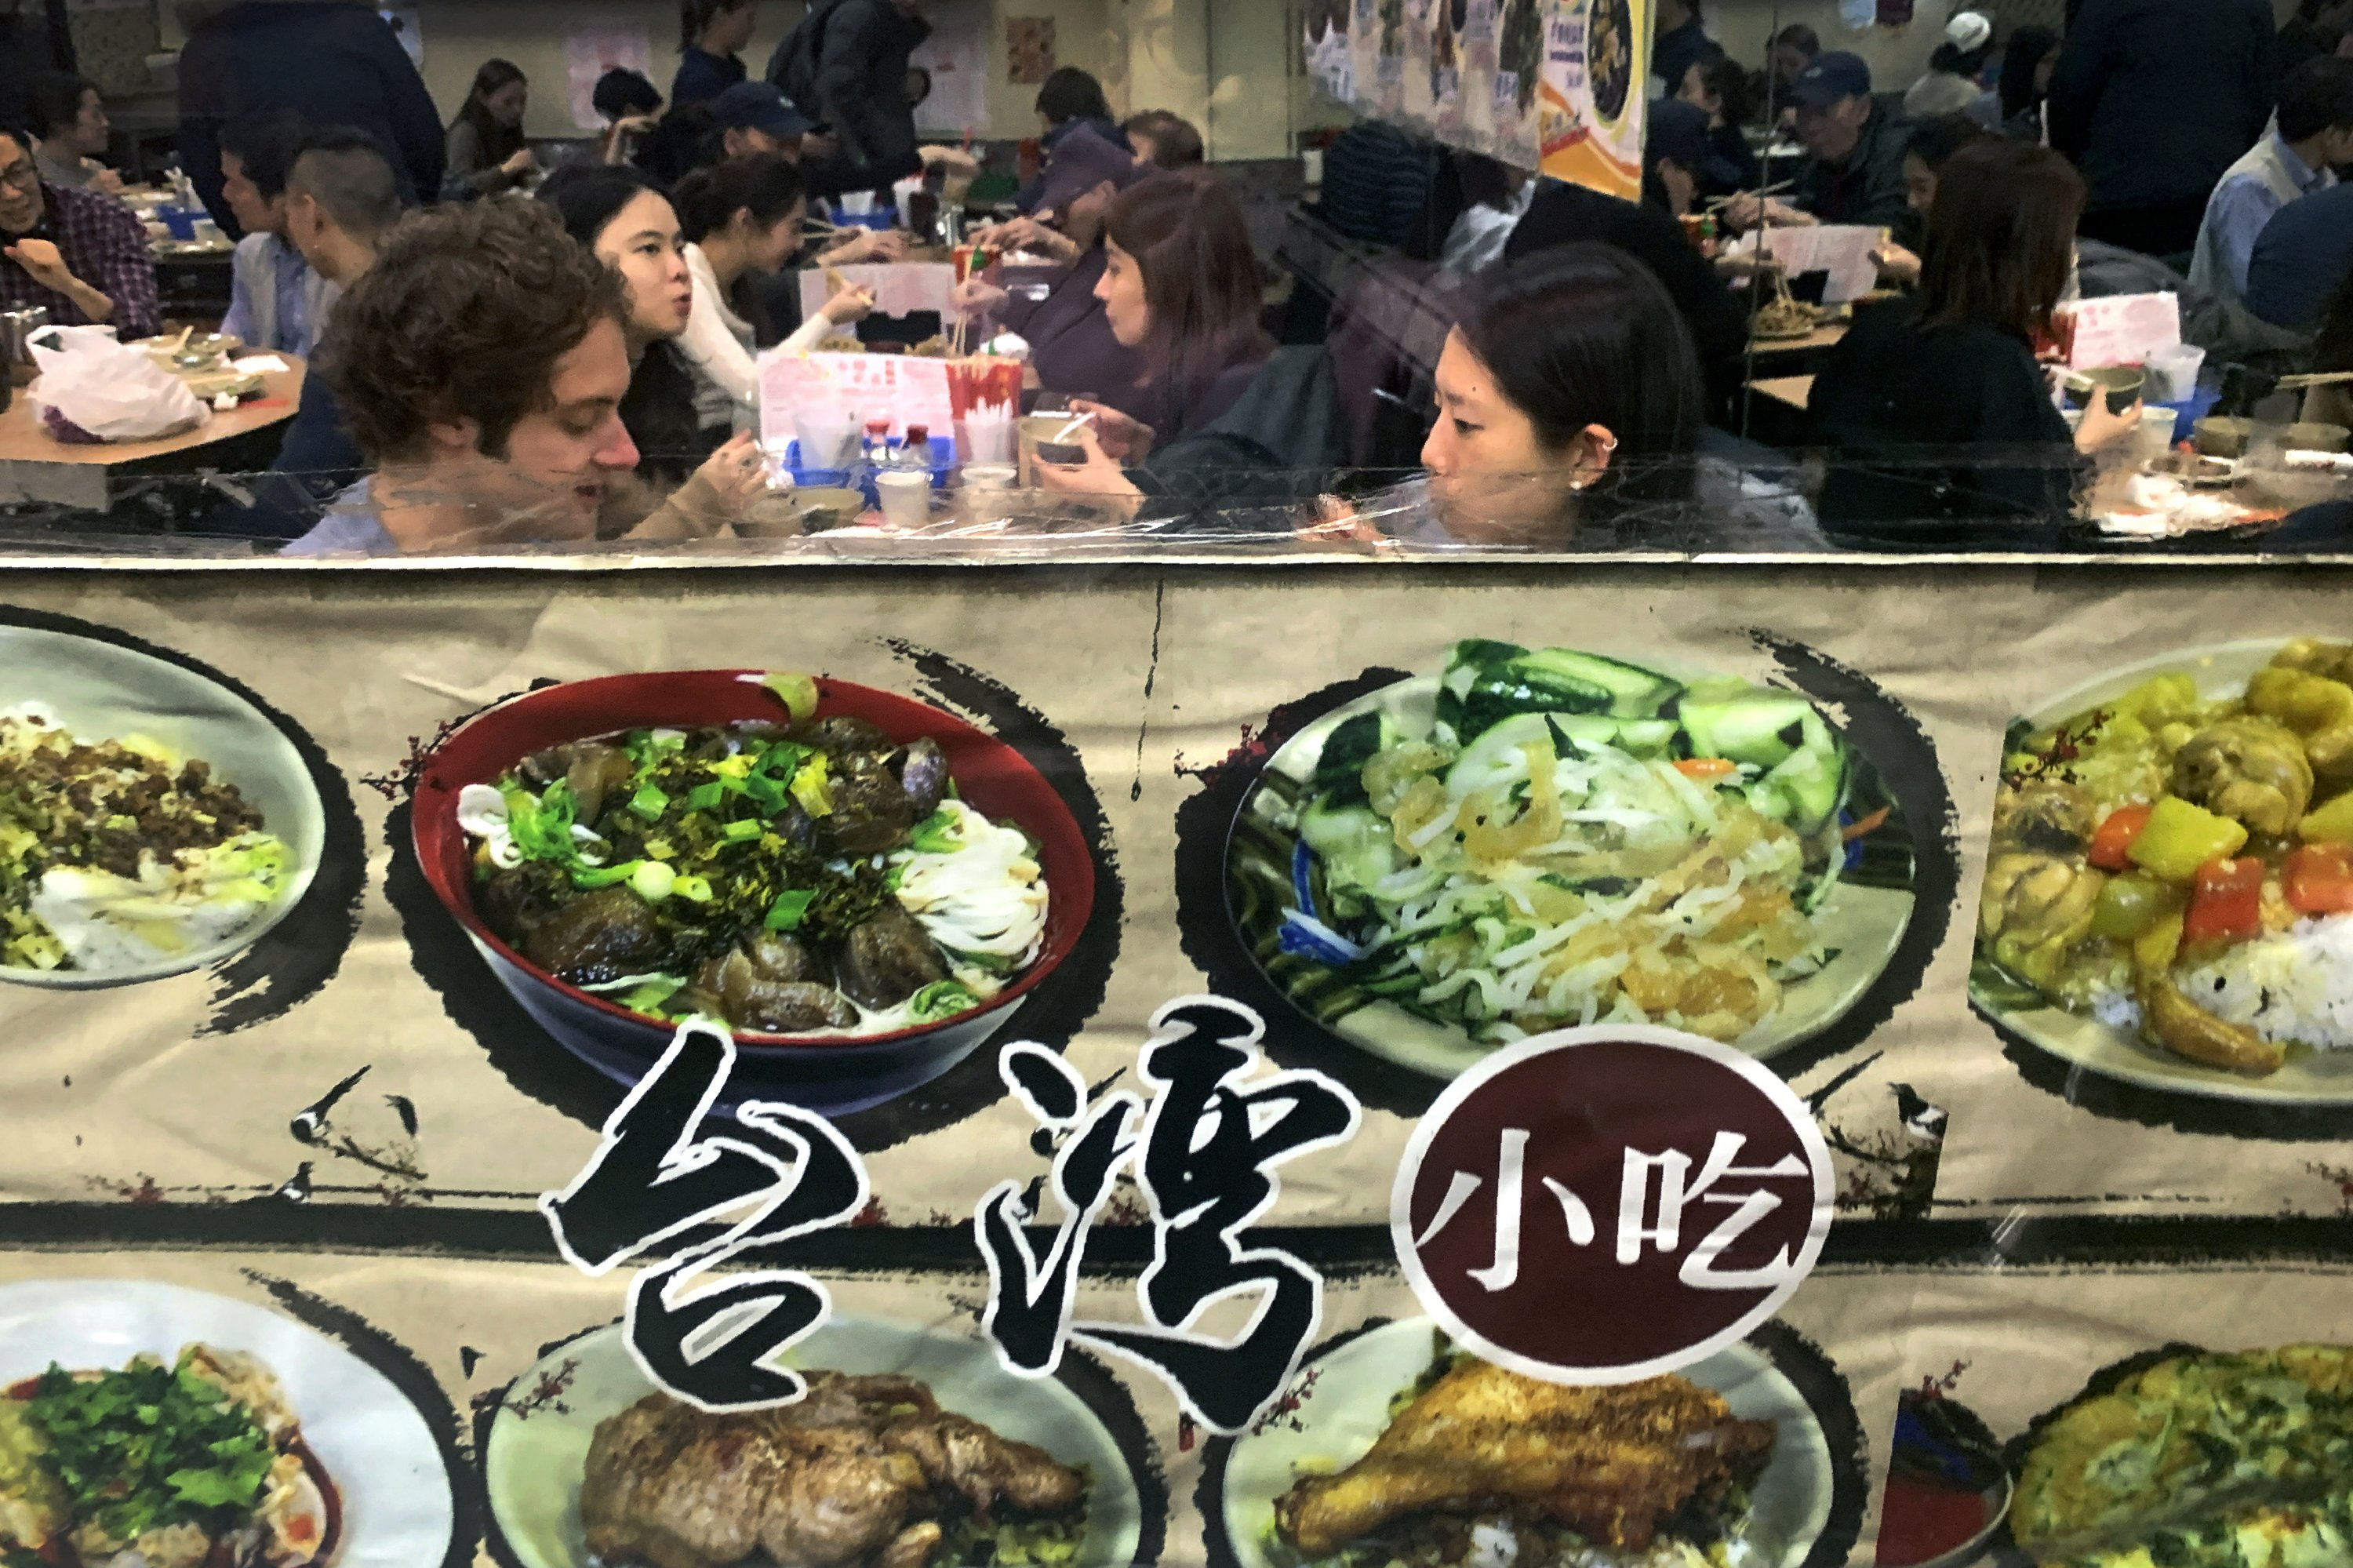 Asians Cringe At Chinese Restaurant Syndrome In Dictionary